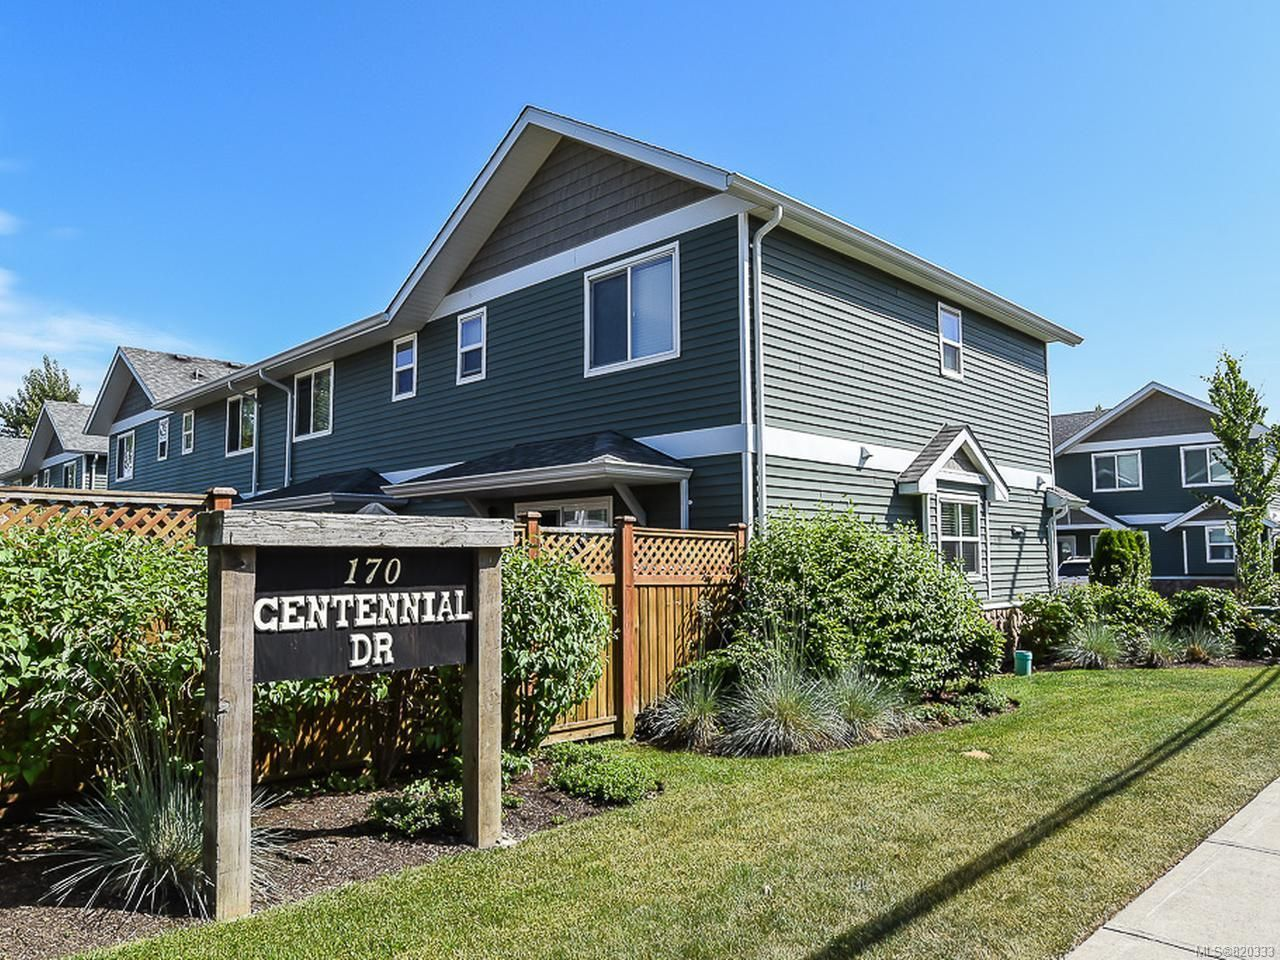 Main Photo: 108 170 CENTENNIAL DRIVE in COURTENAY: CV Courtenay East Row/Townhouse for sale (Comox Valley)  : MLS®# 820333